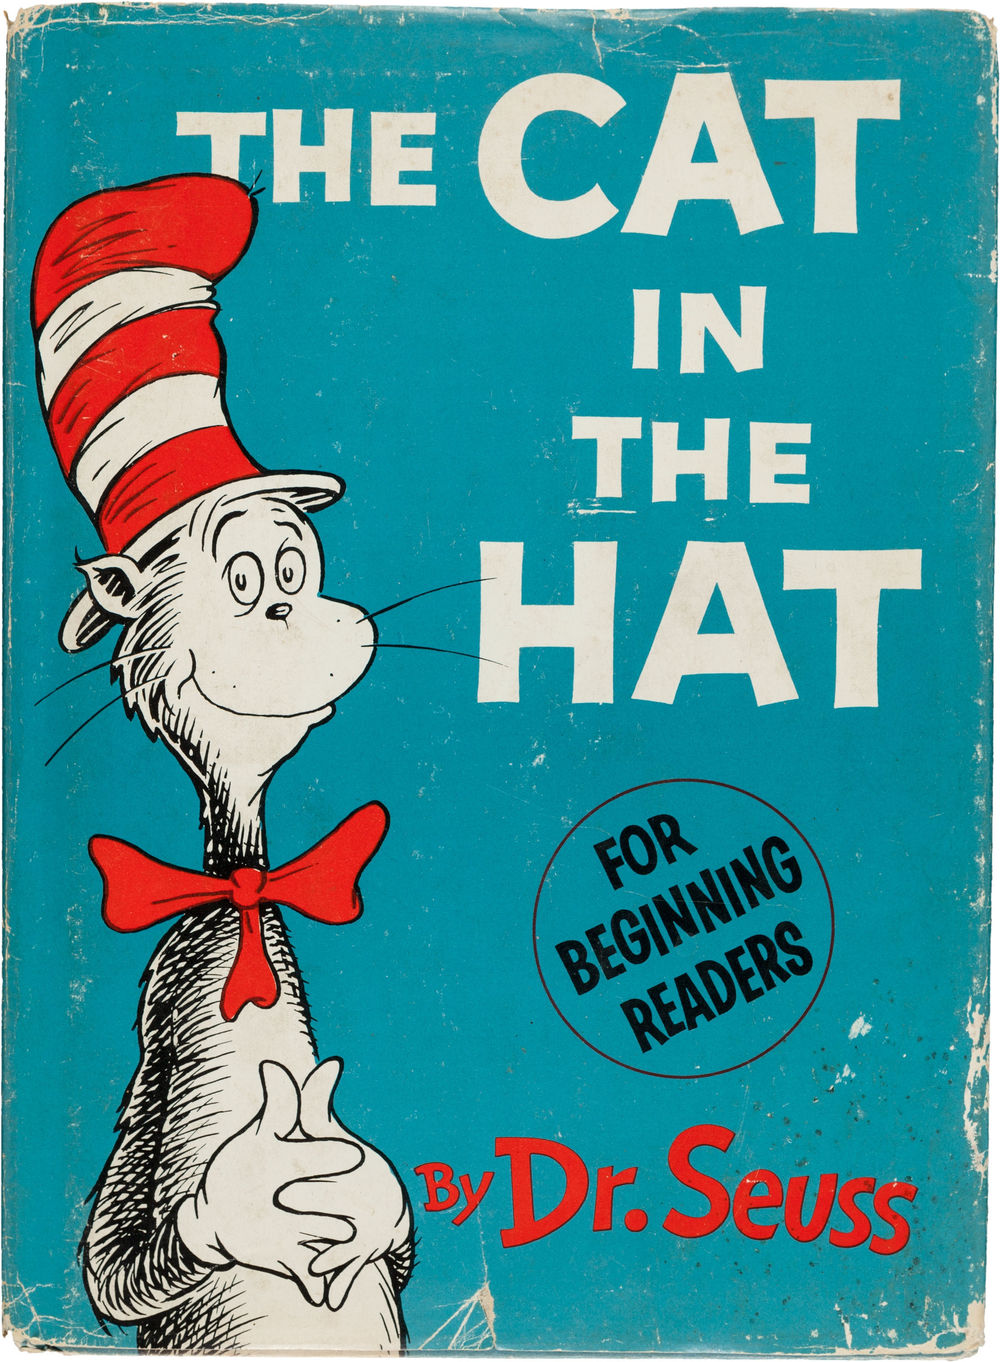 Dr. Seuss. The Cat in the Hat. [New York]: Random House, [1957]. First edition. Signed by the author in blue ballpoint via